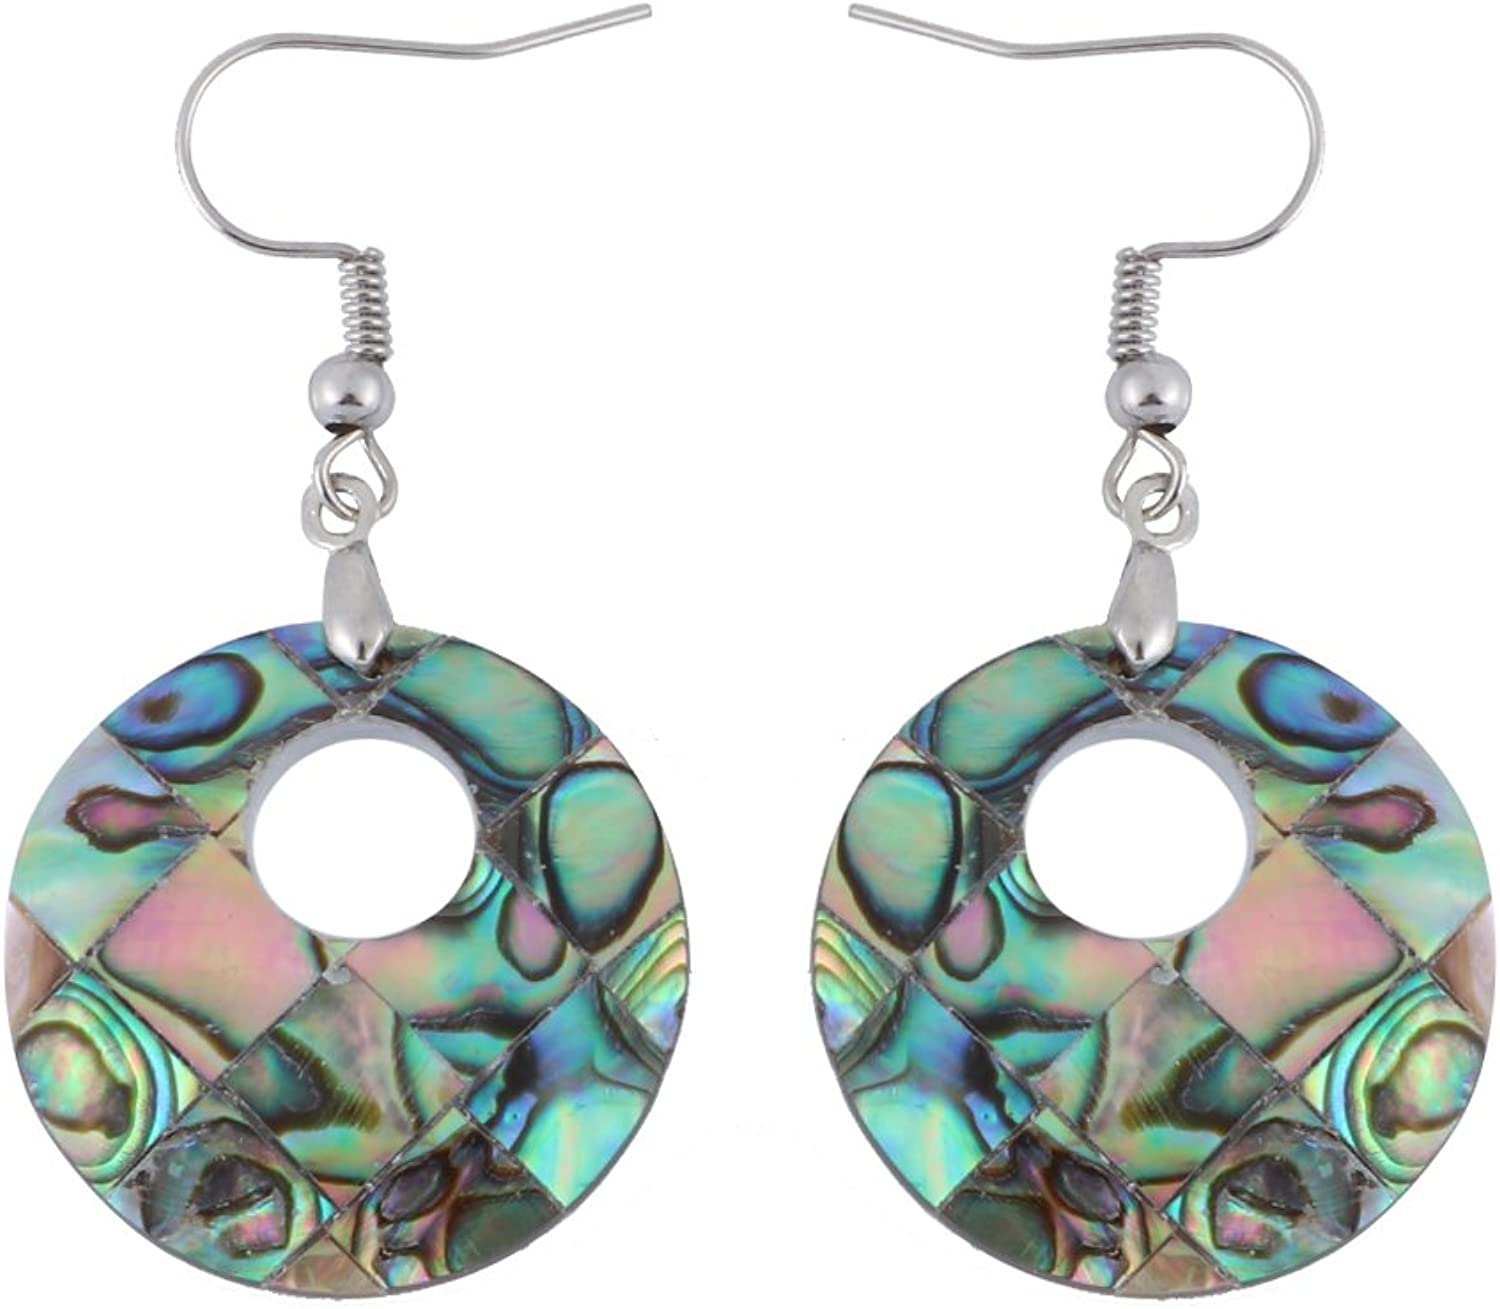 TUSHUO The Round Shape of the Abalone Shell Pendant Earrings Eardrop (Sliver)